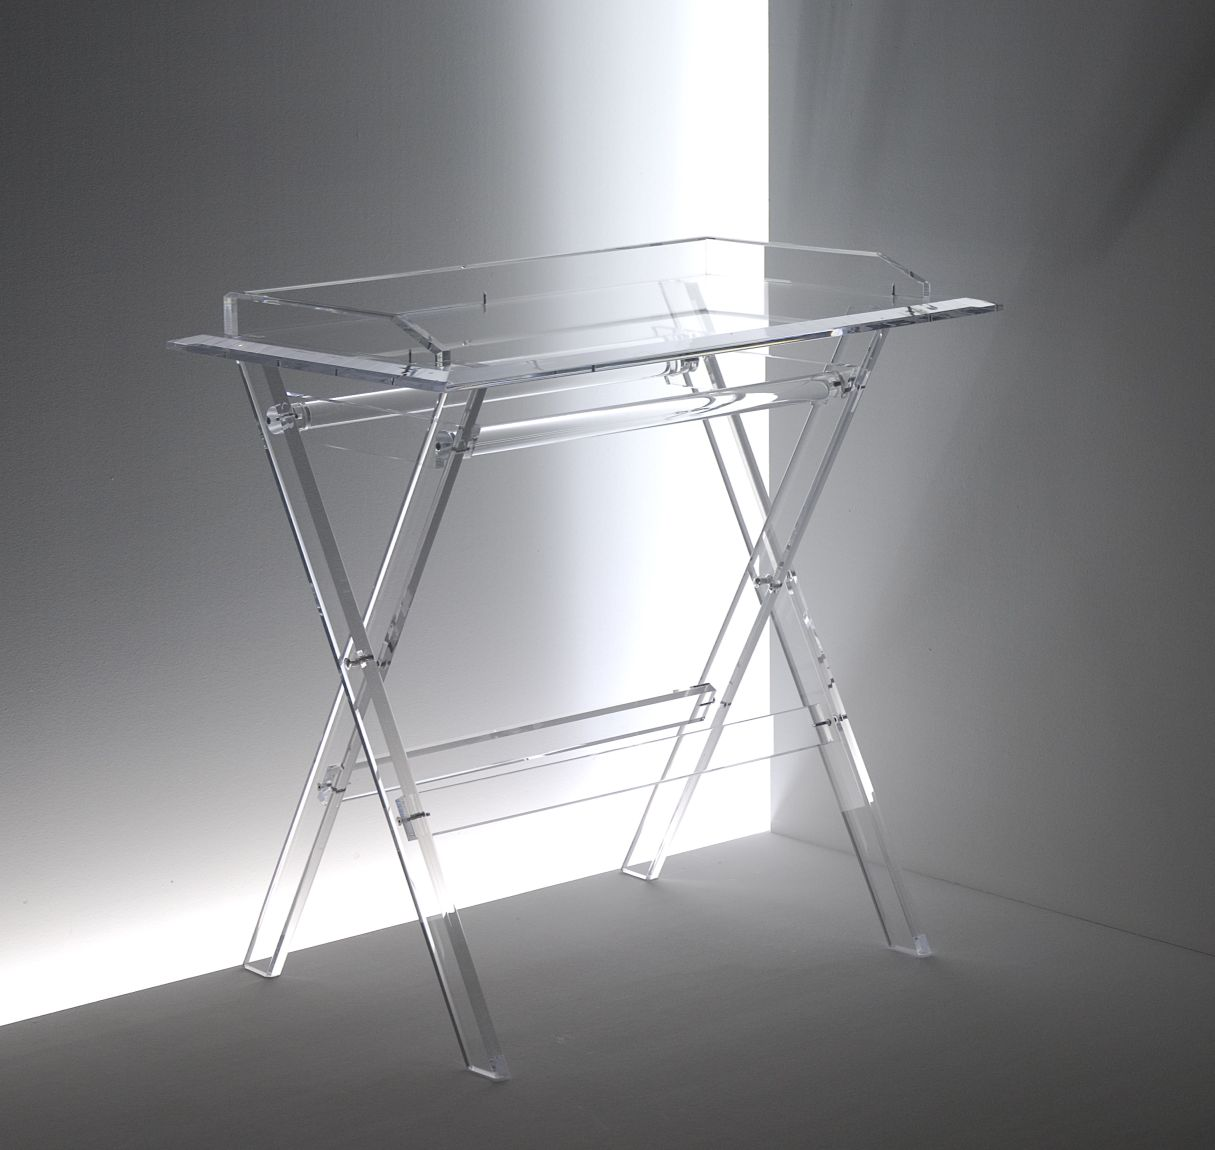 butler tables - Tables - Moebel-Glanz - Specialist for acrylic glass ...